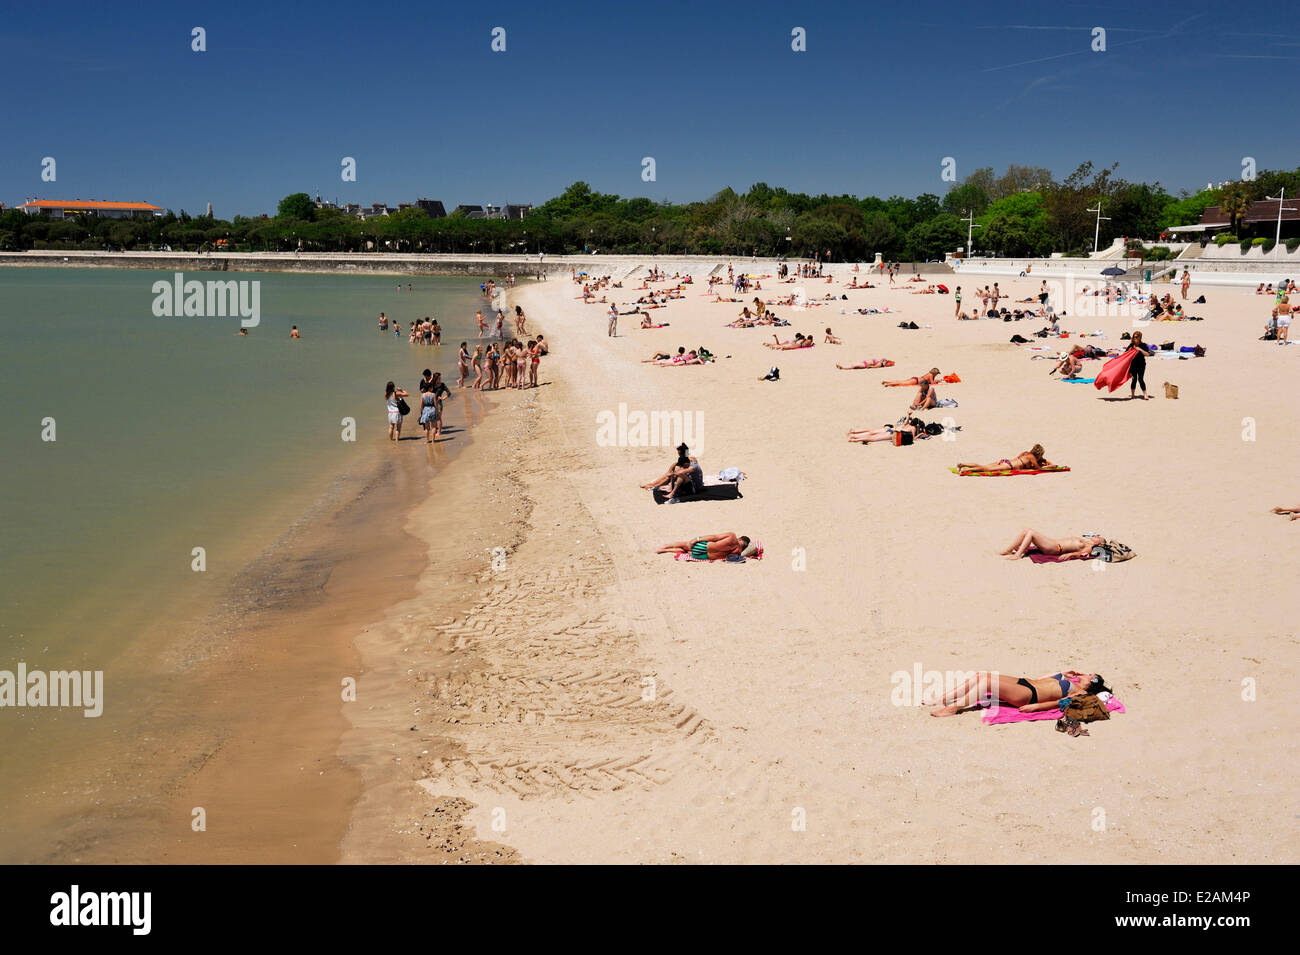 France, Charente Maritime, La Rochelle, tourists on the Plage de la Concurrence (Concurrence Beach) - Stock Image